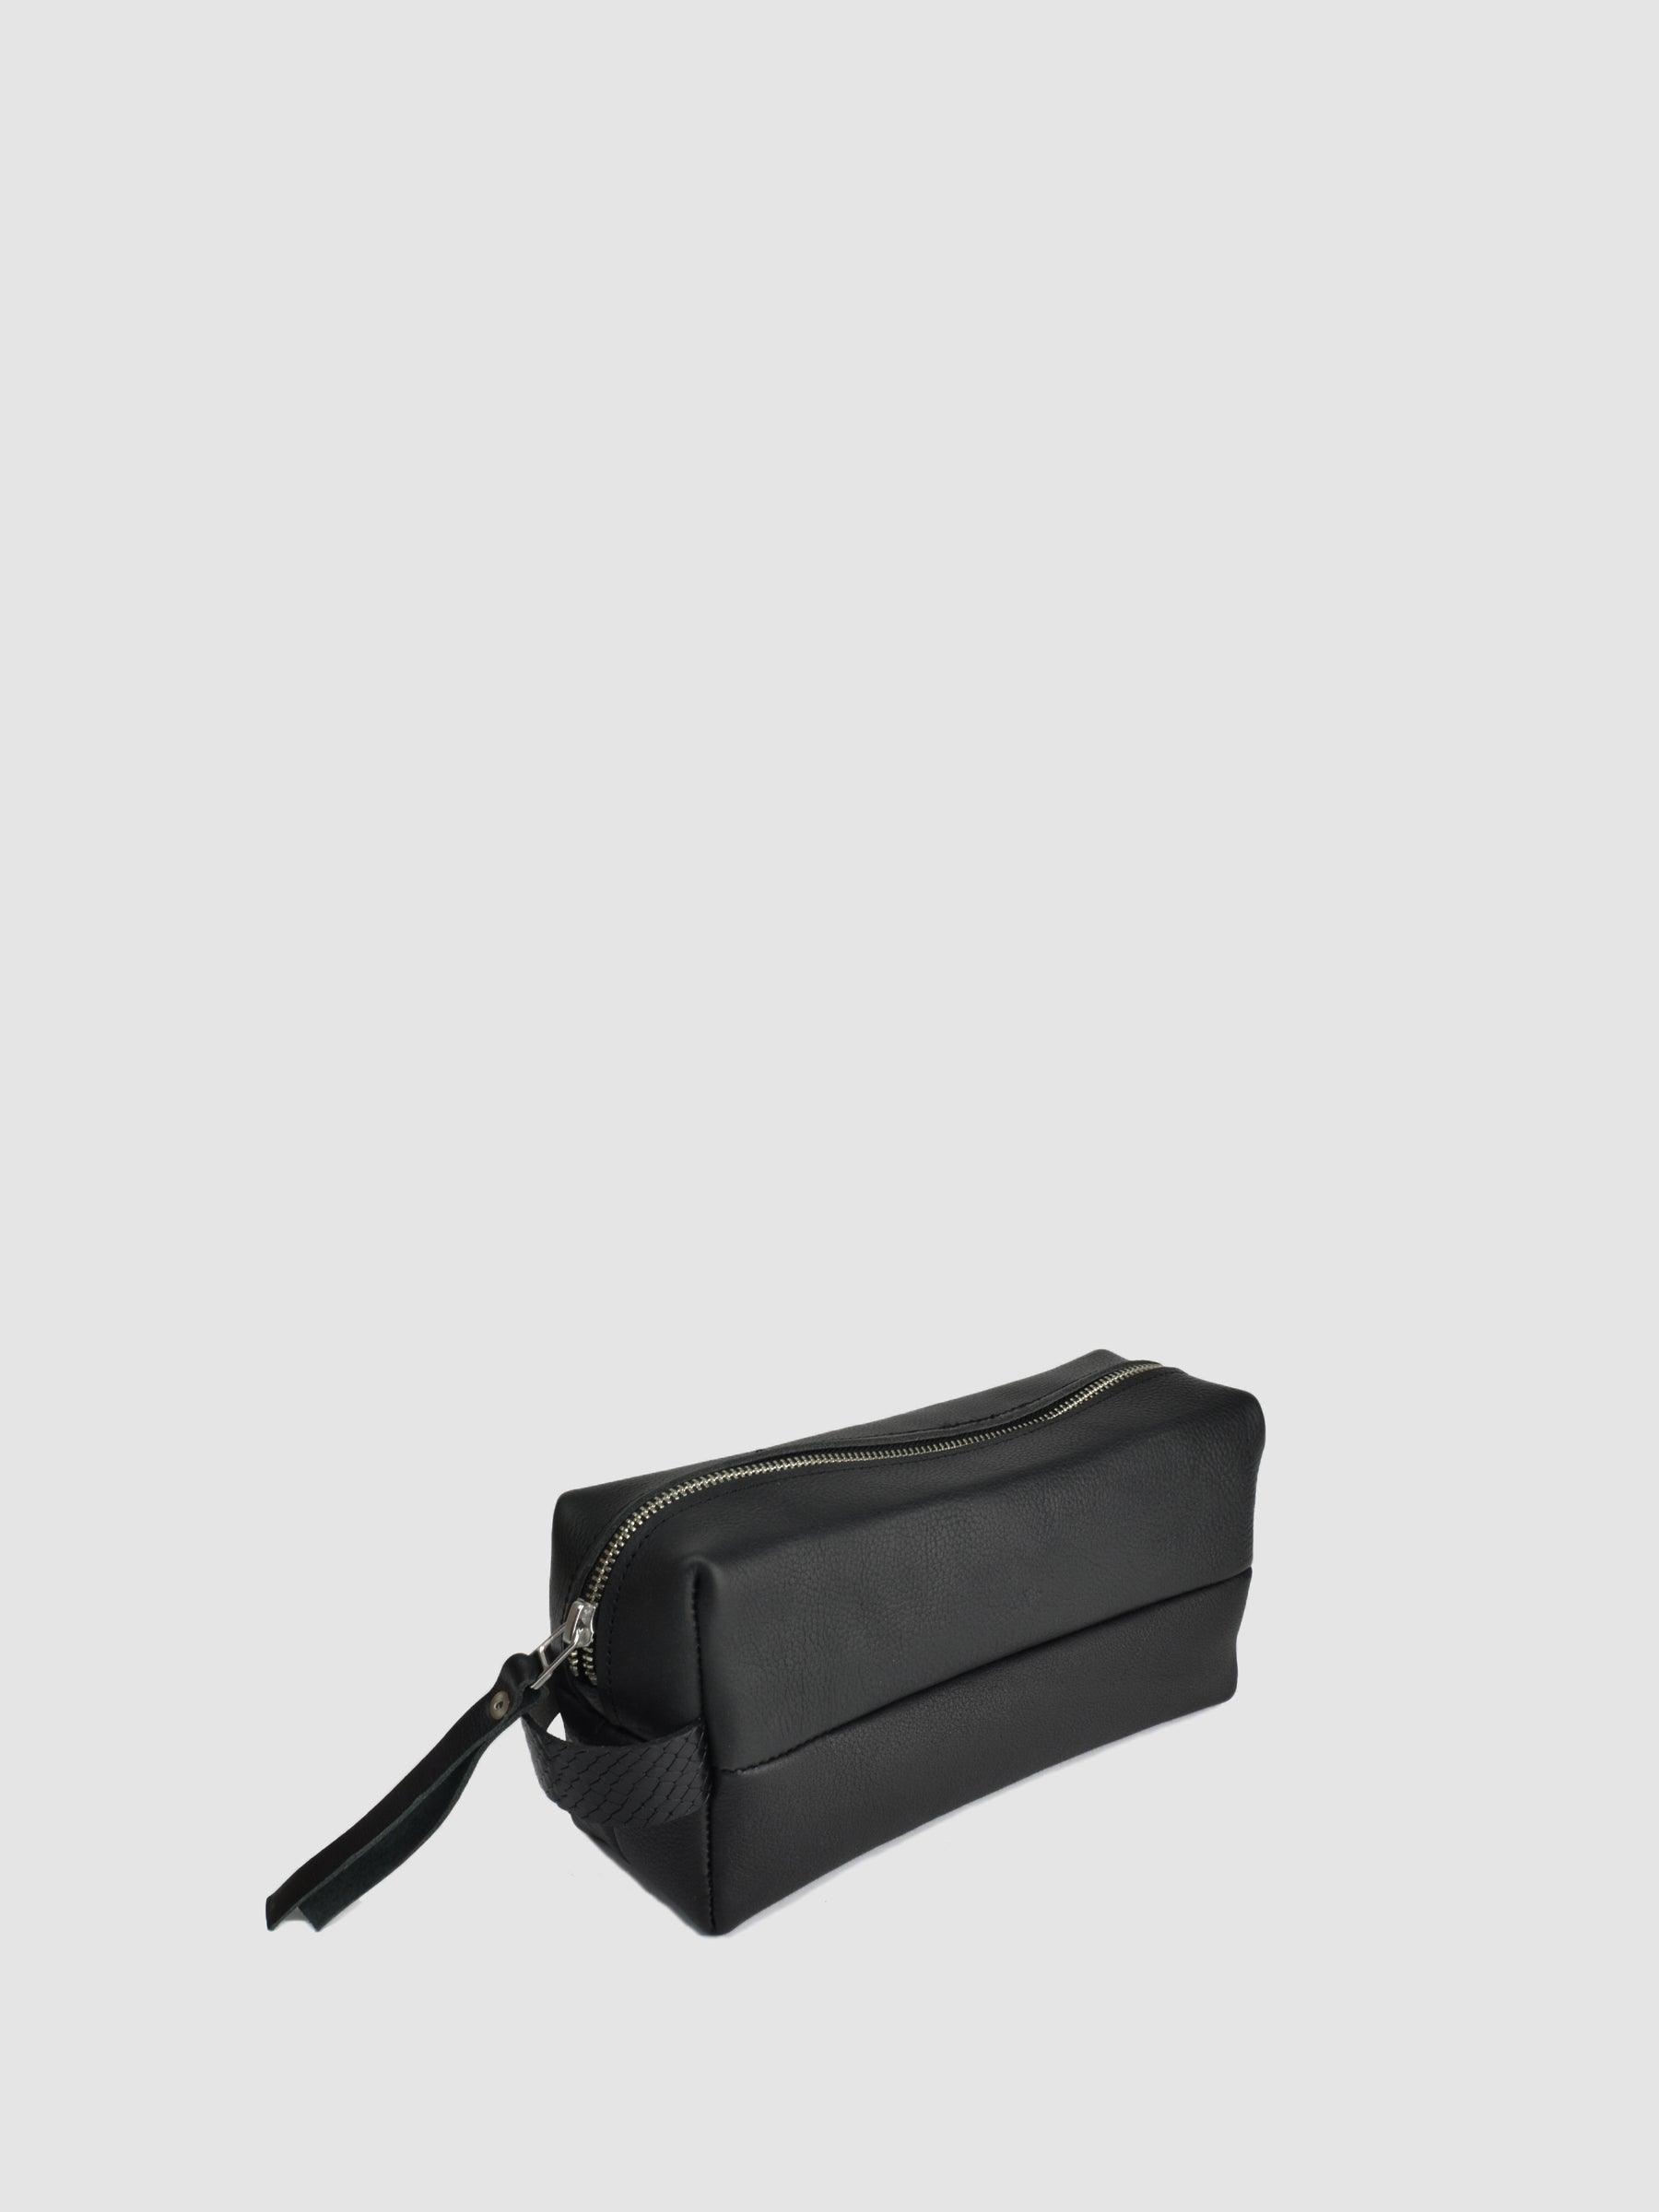 SONYA LEE. The dopp kit is named after Charles Doppelt a 20th century leather craftsman whos company designed the first leather toiletry bag in 1926. It features a side handle and zipper closure. Made with our classic Canadian bison hide. 10% of proceeds will go toward the Nature Conservancy Canada.